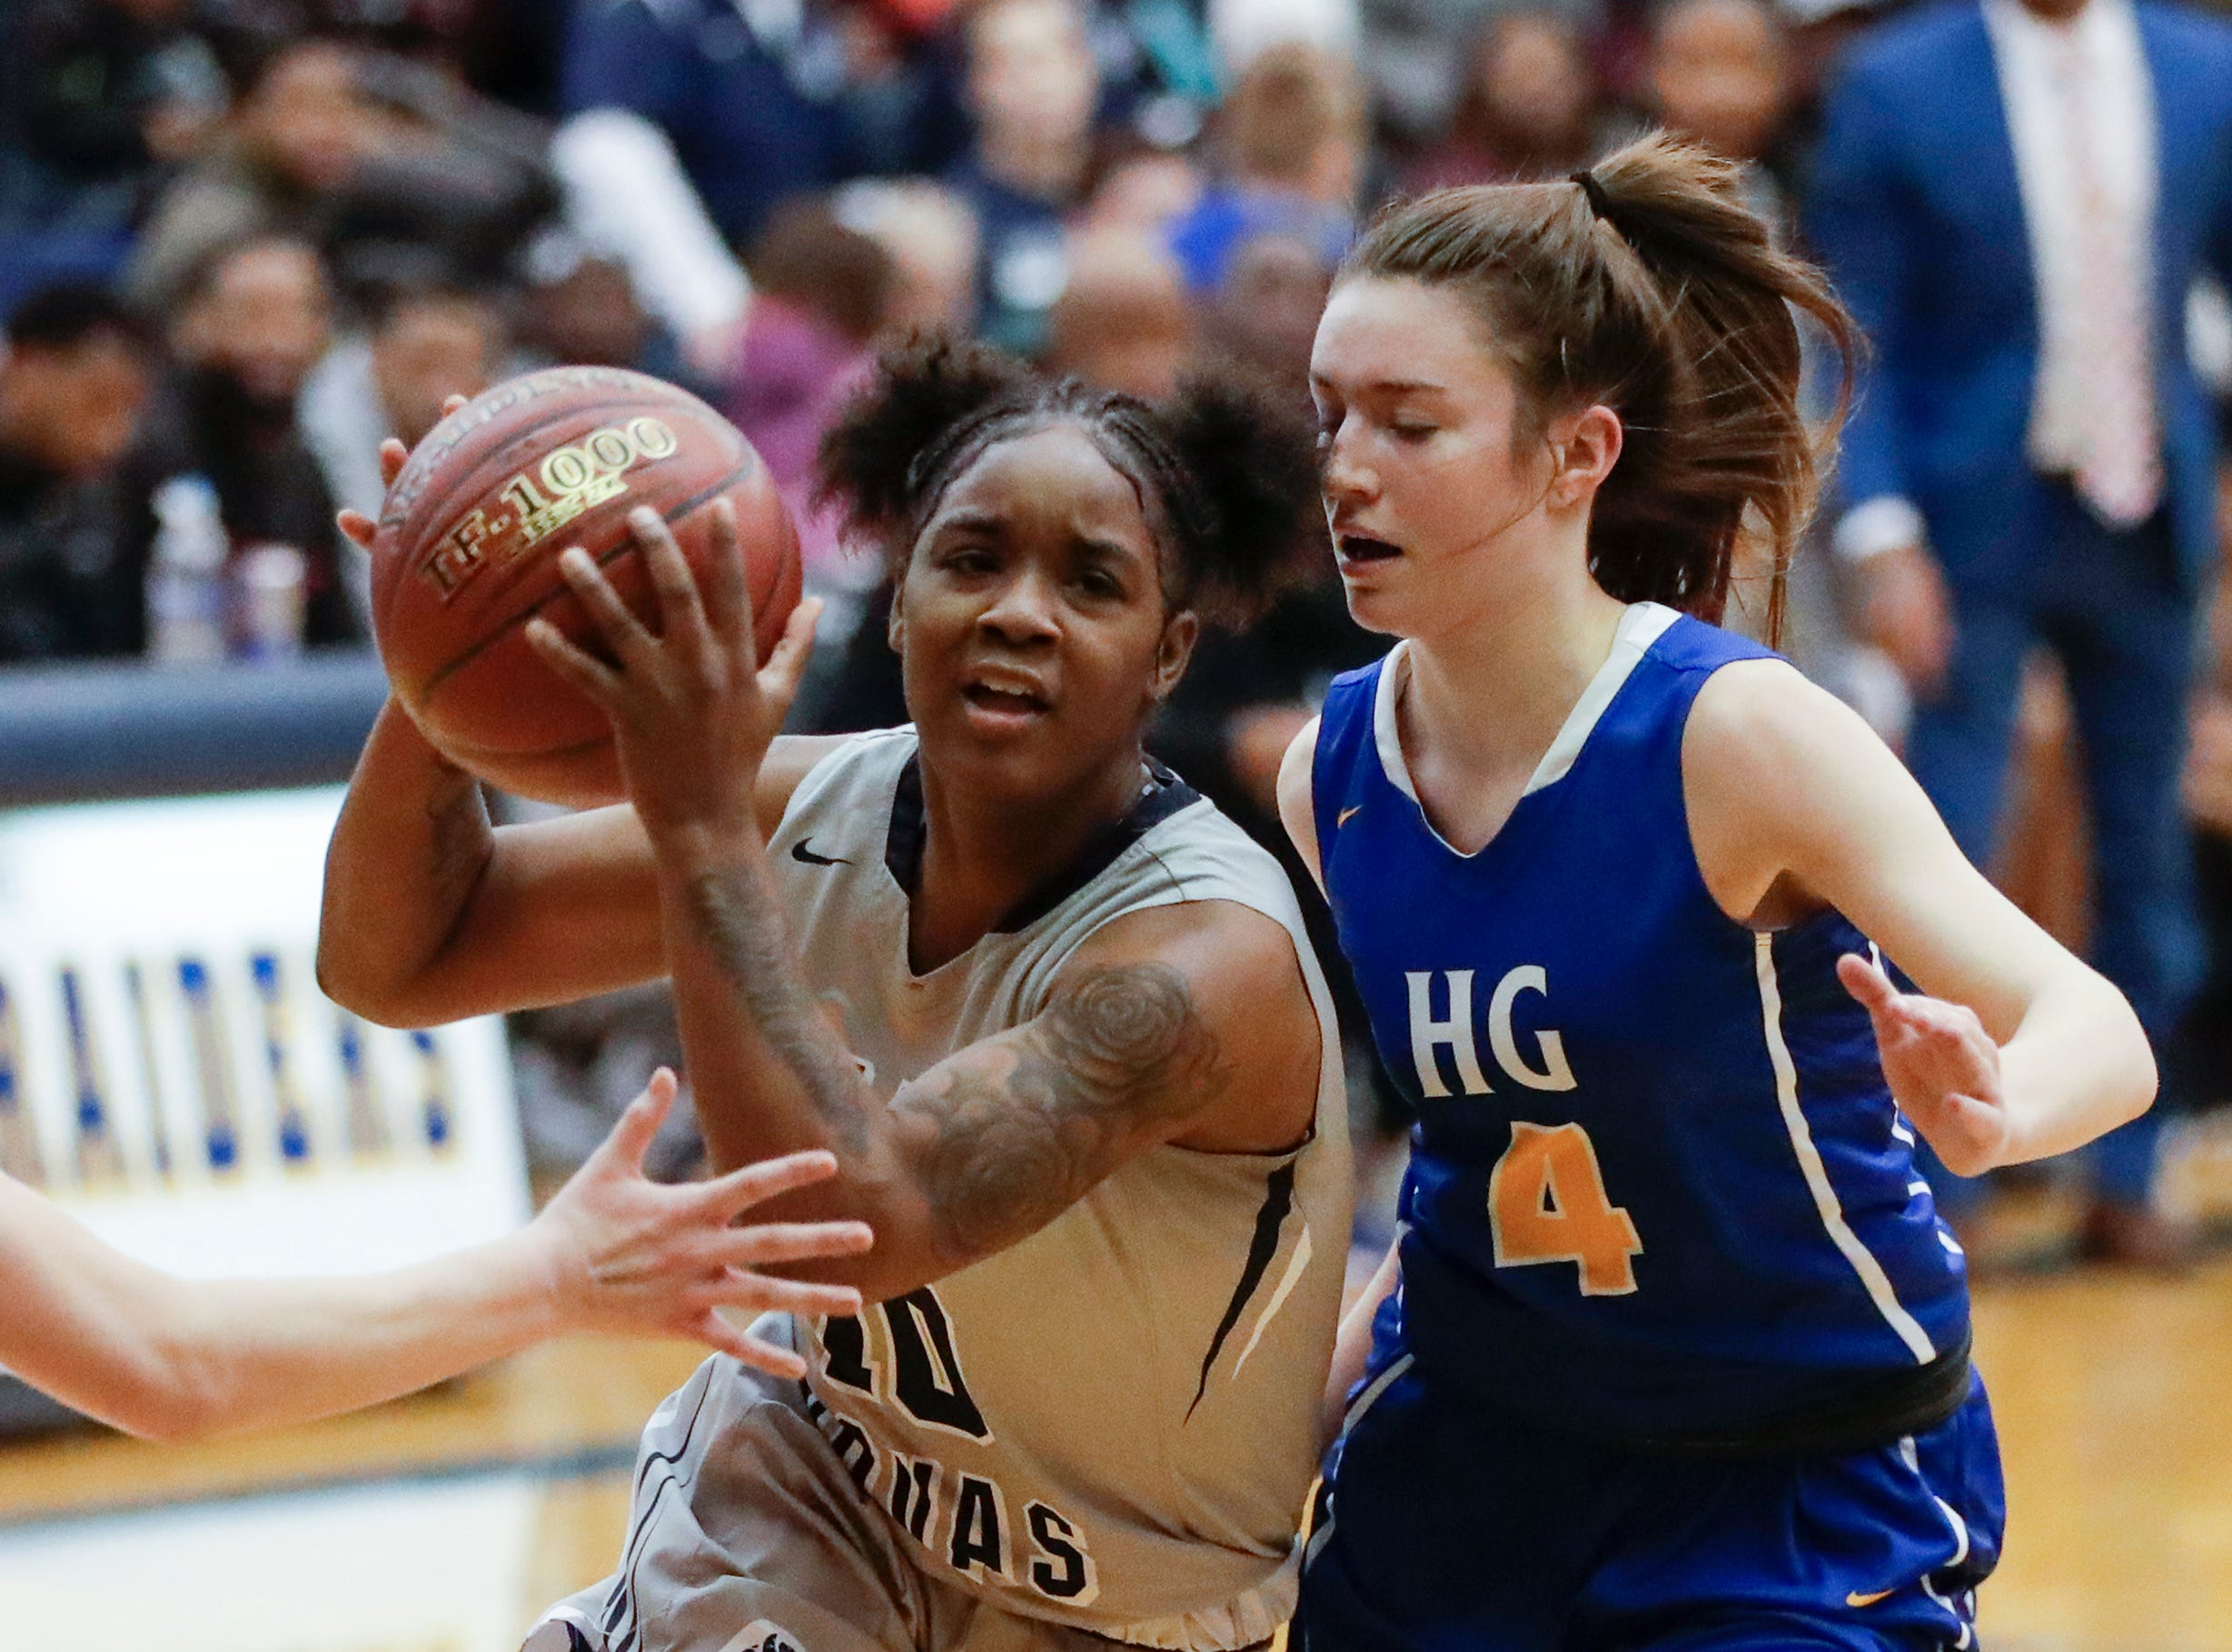 Milwaukee Academy of Science's Shemera Williams (10) drives to the basket against Howards Grove's Mackenzie Holzwart (4) during a WIAA Division 4 sectional championship game at Sheboygan North High School Saturday, March 2, 2019, in Sheboygan, Wis. Joshua Clark/USA TODAY NETWORK-Wisconsin